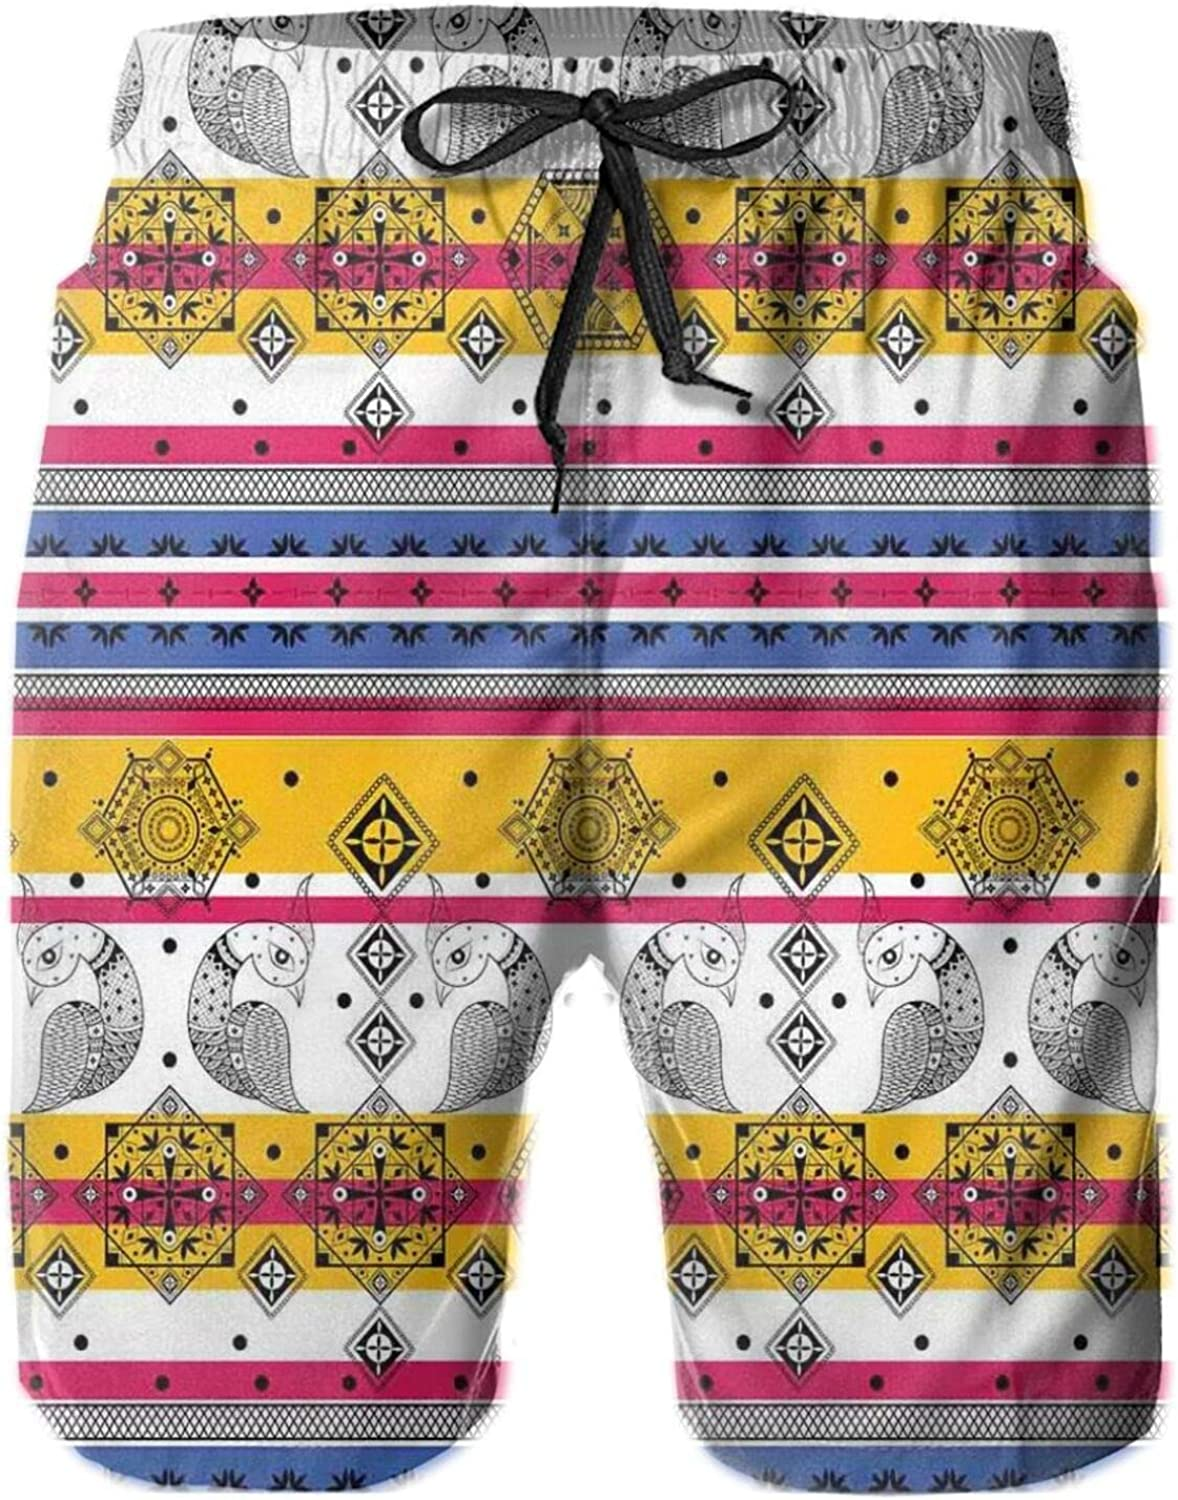 Colored Ethnic with Paisley Details with Animal Birds in Aztec Print Drawstring Waist Beach Shorts for Men Swim Trucks Board Shorts with Mesh Lining,L